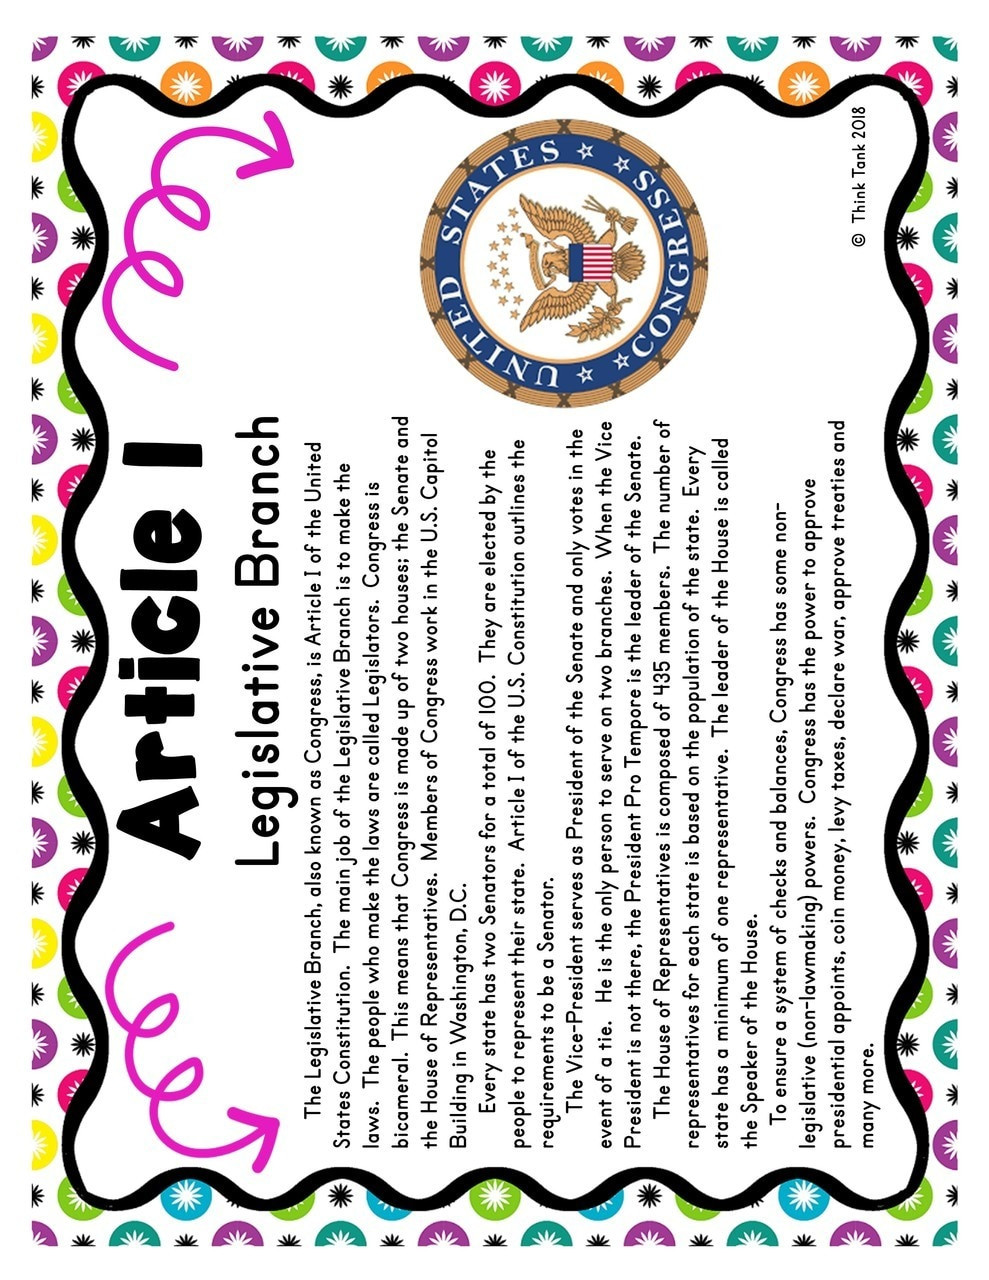 Constitution Scavenger Hunt Worksheet U S Constitution Scavenger Hunt Task Cards Articles Of the Constitution